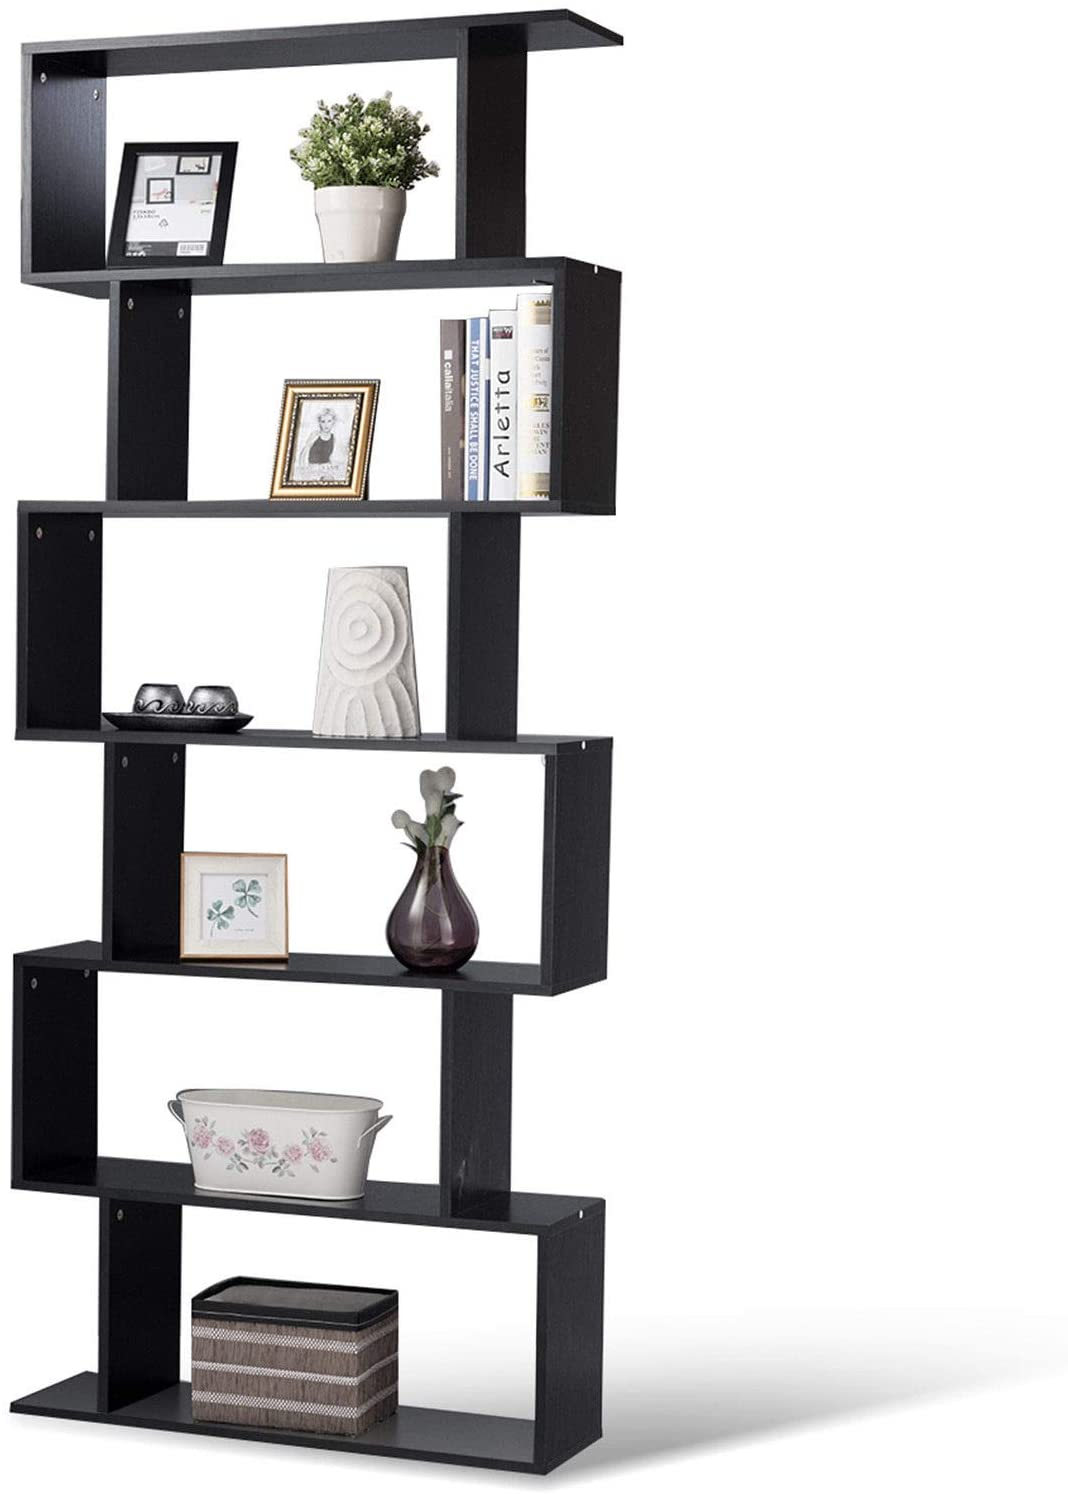 Bookcase Bookshelf S Shape Book Case Storage Shelf Display Unit 4 Tier Shelves